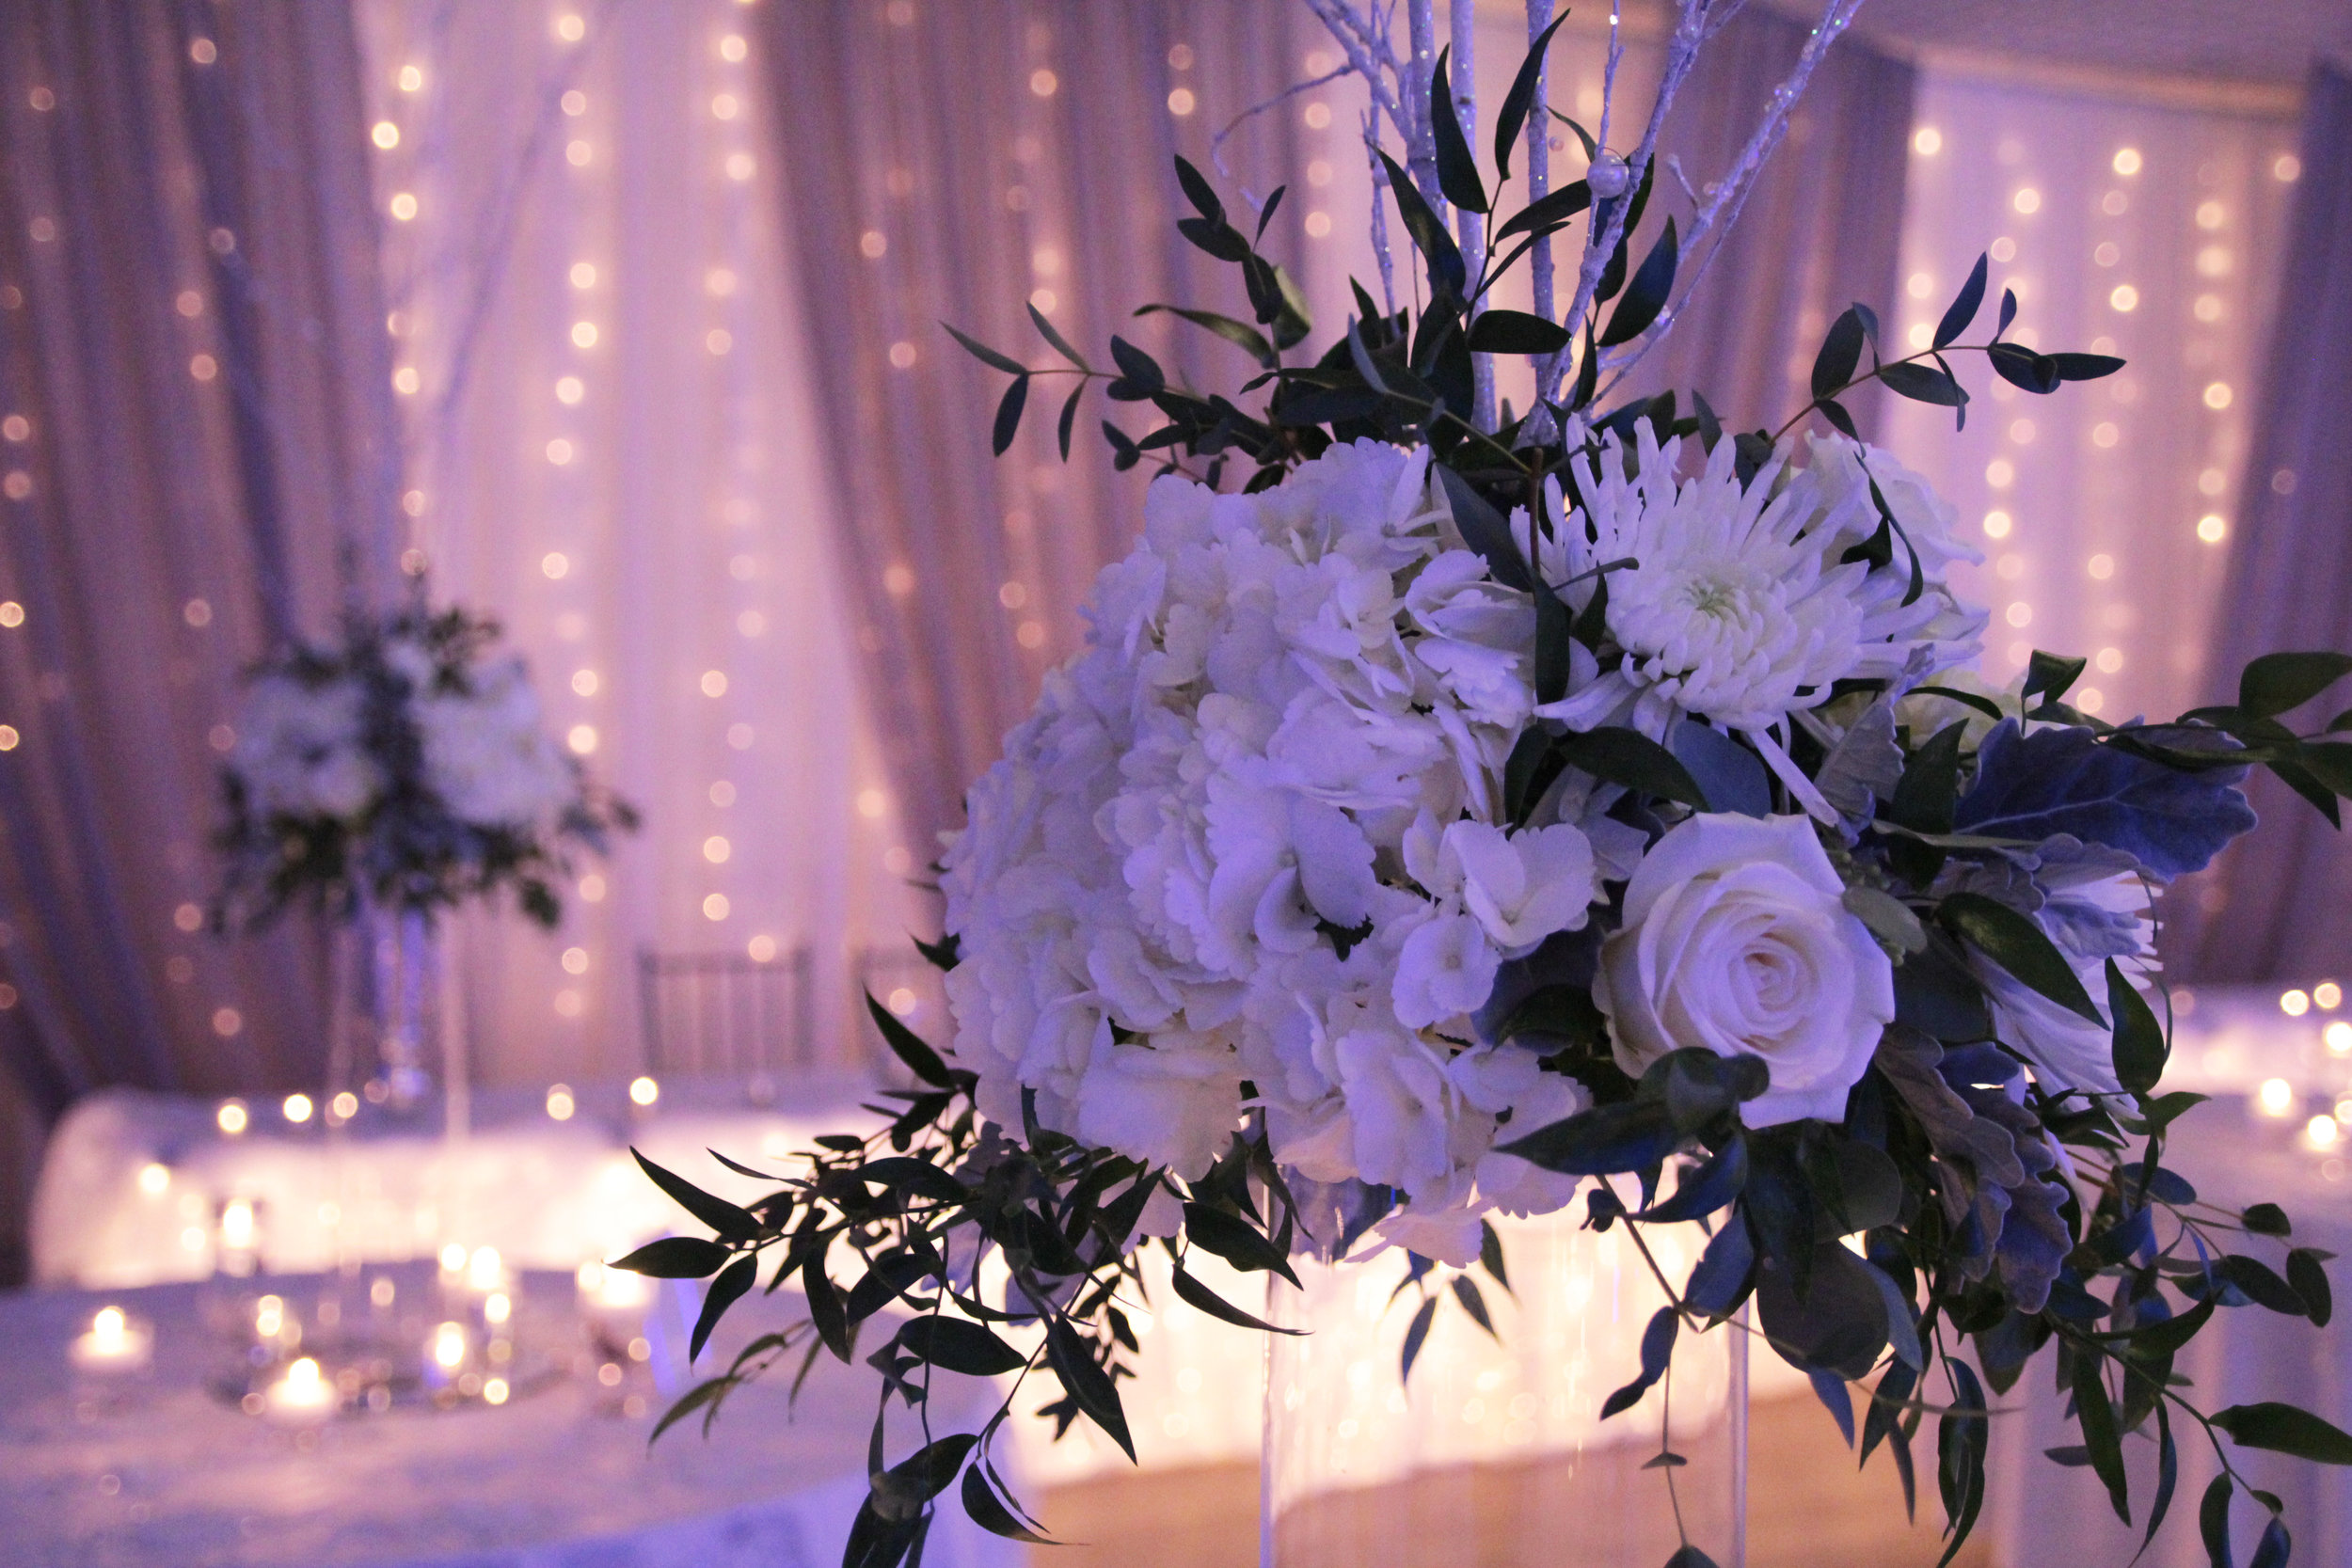 Flower arrangements done in monochromatic colour schemes of all white look elegant, glamourous, and timeless for a black tie winter wedding affair.